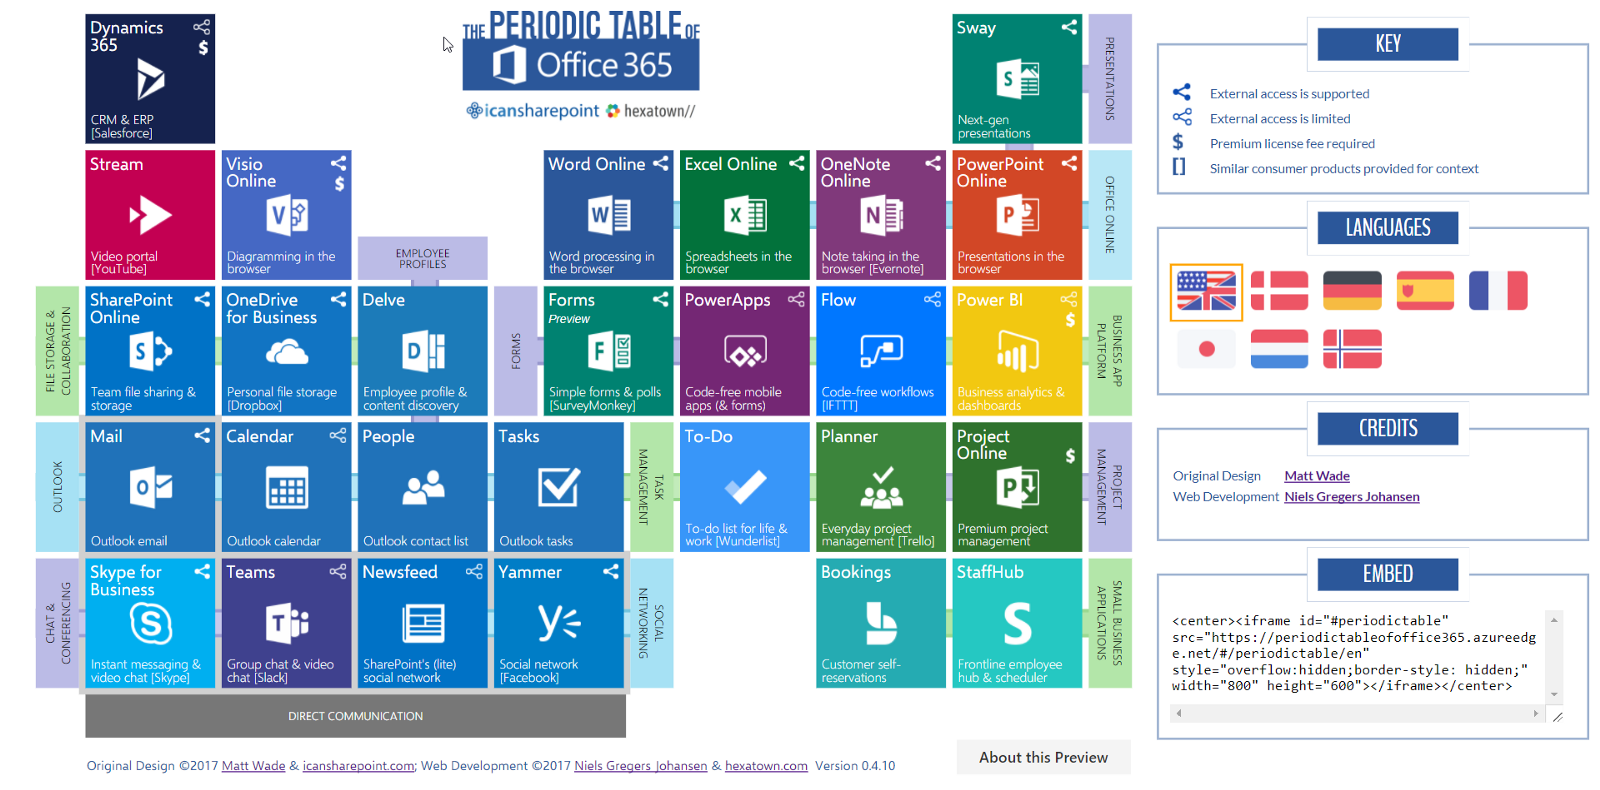 Quickly understand what office 365 is hexatownblog periodic table of office 365 urtaz Gallery